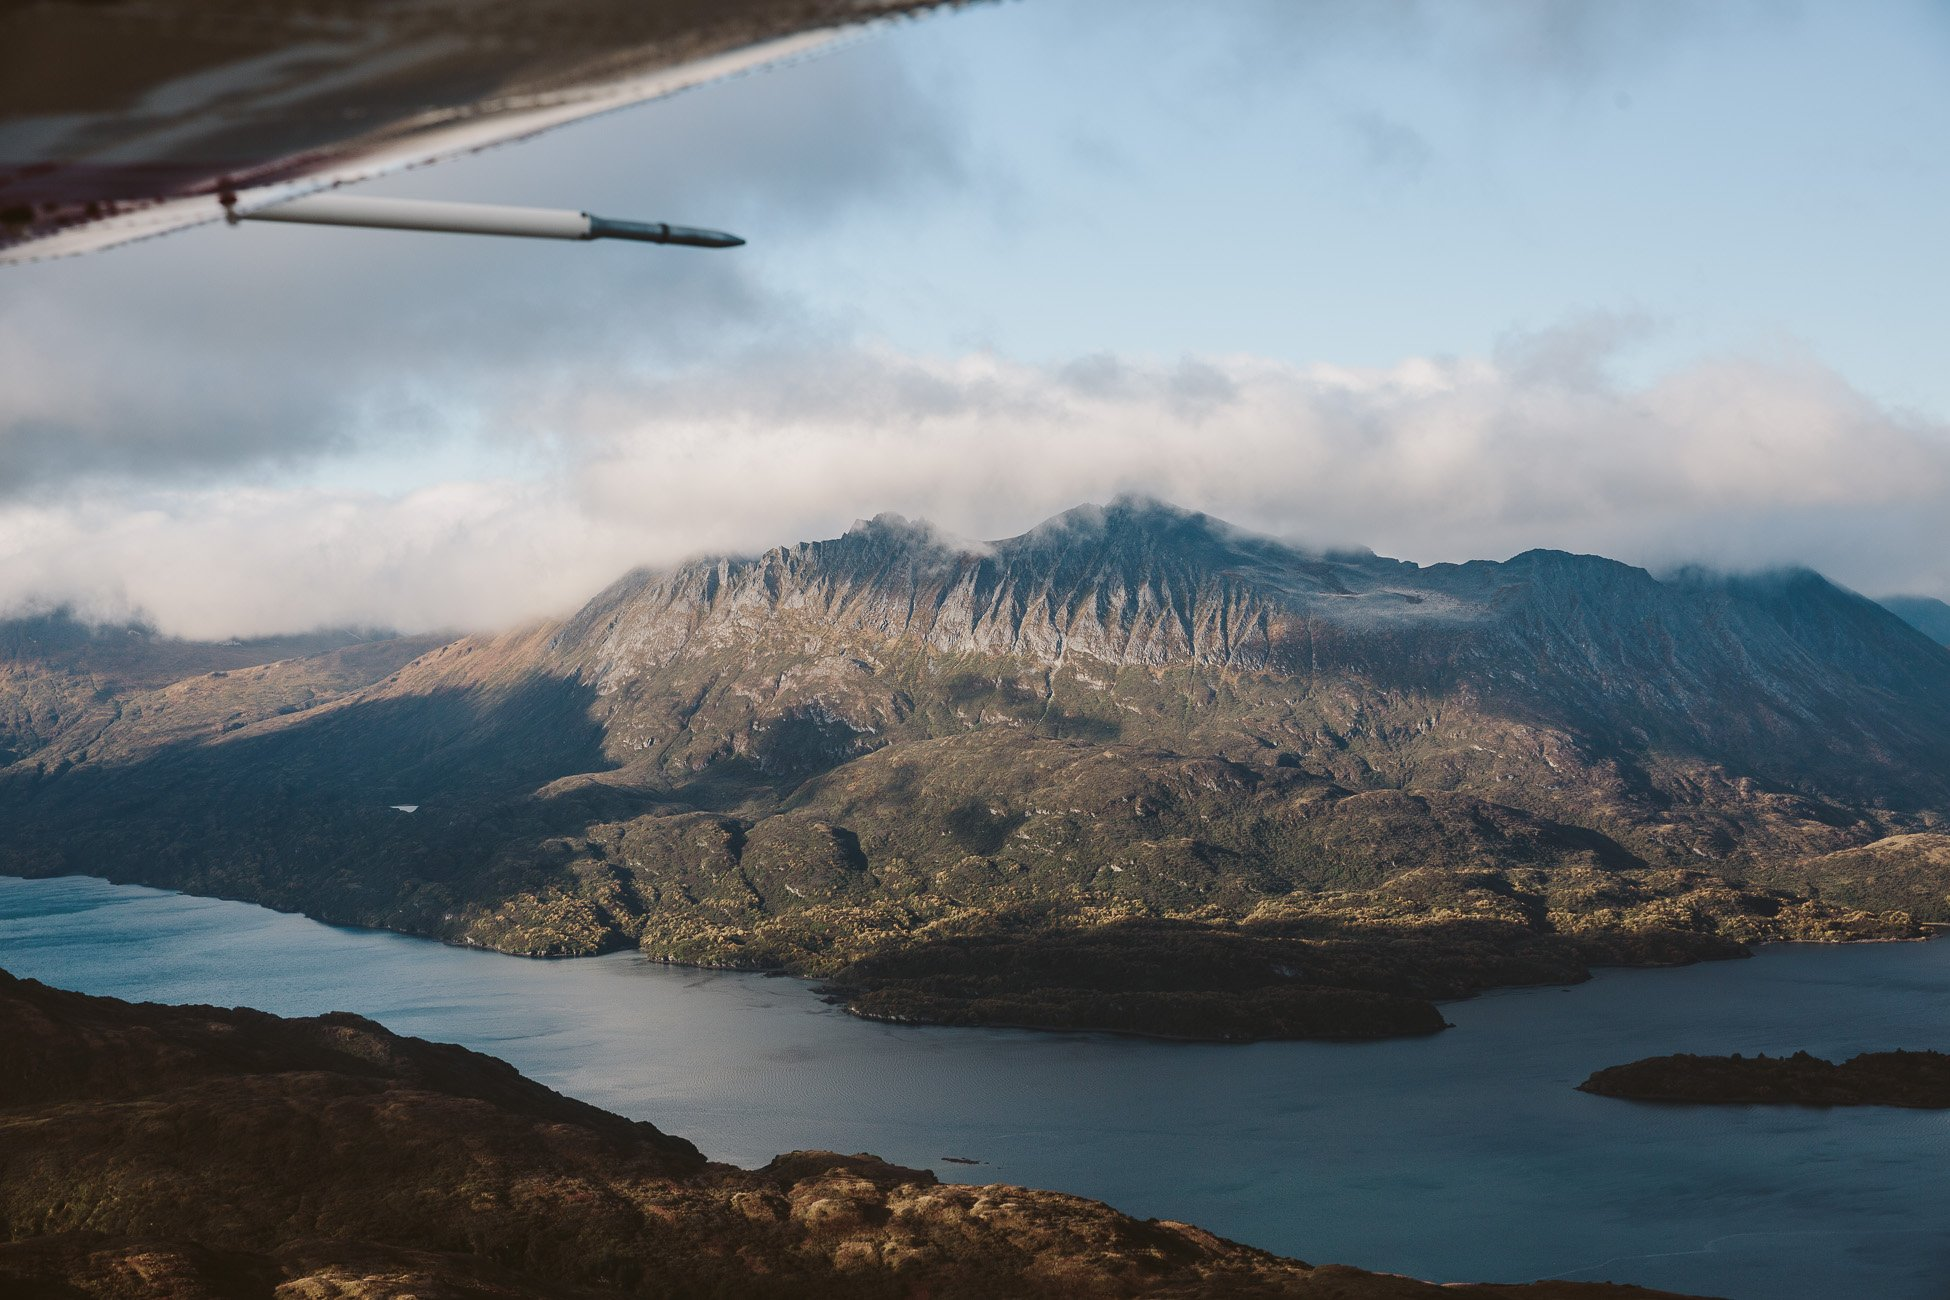 Views of Kodiak Island Alaska from a waterplane of Kingfisher Aviation